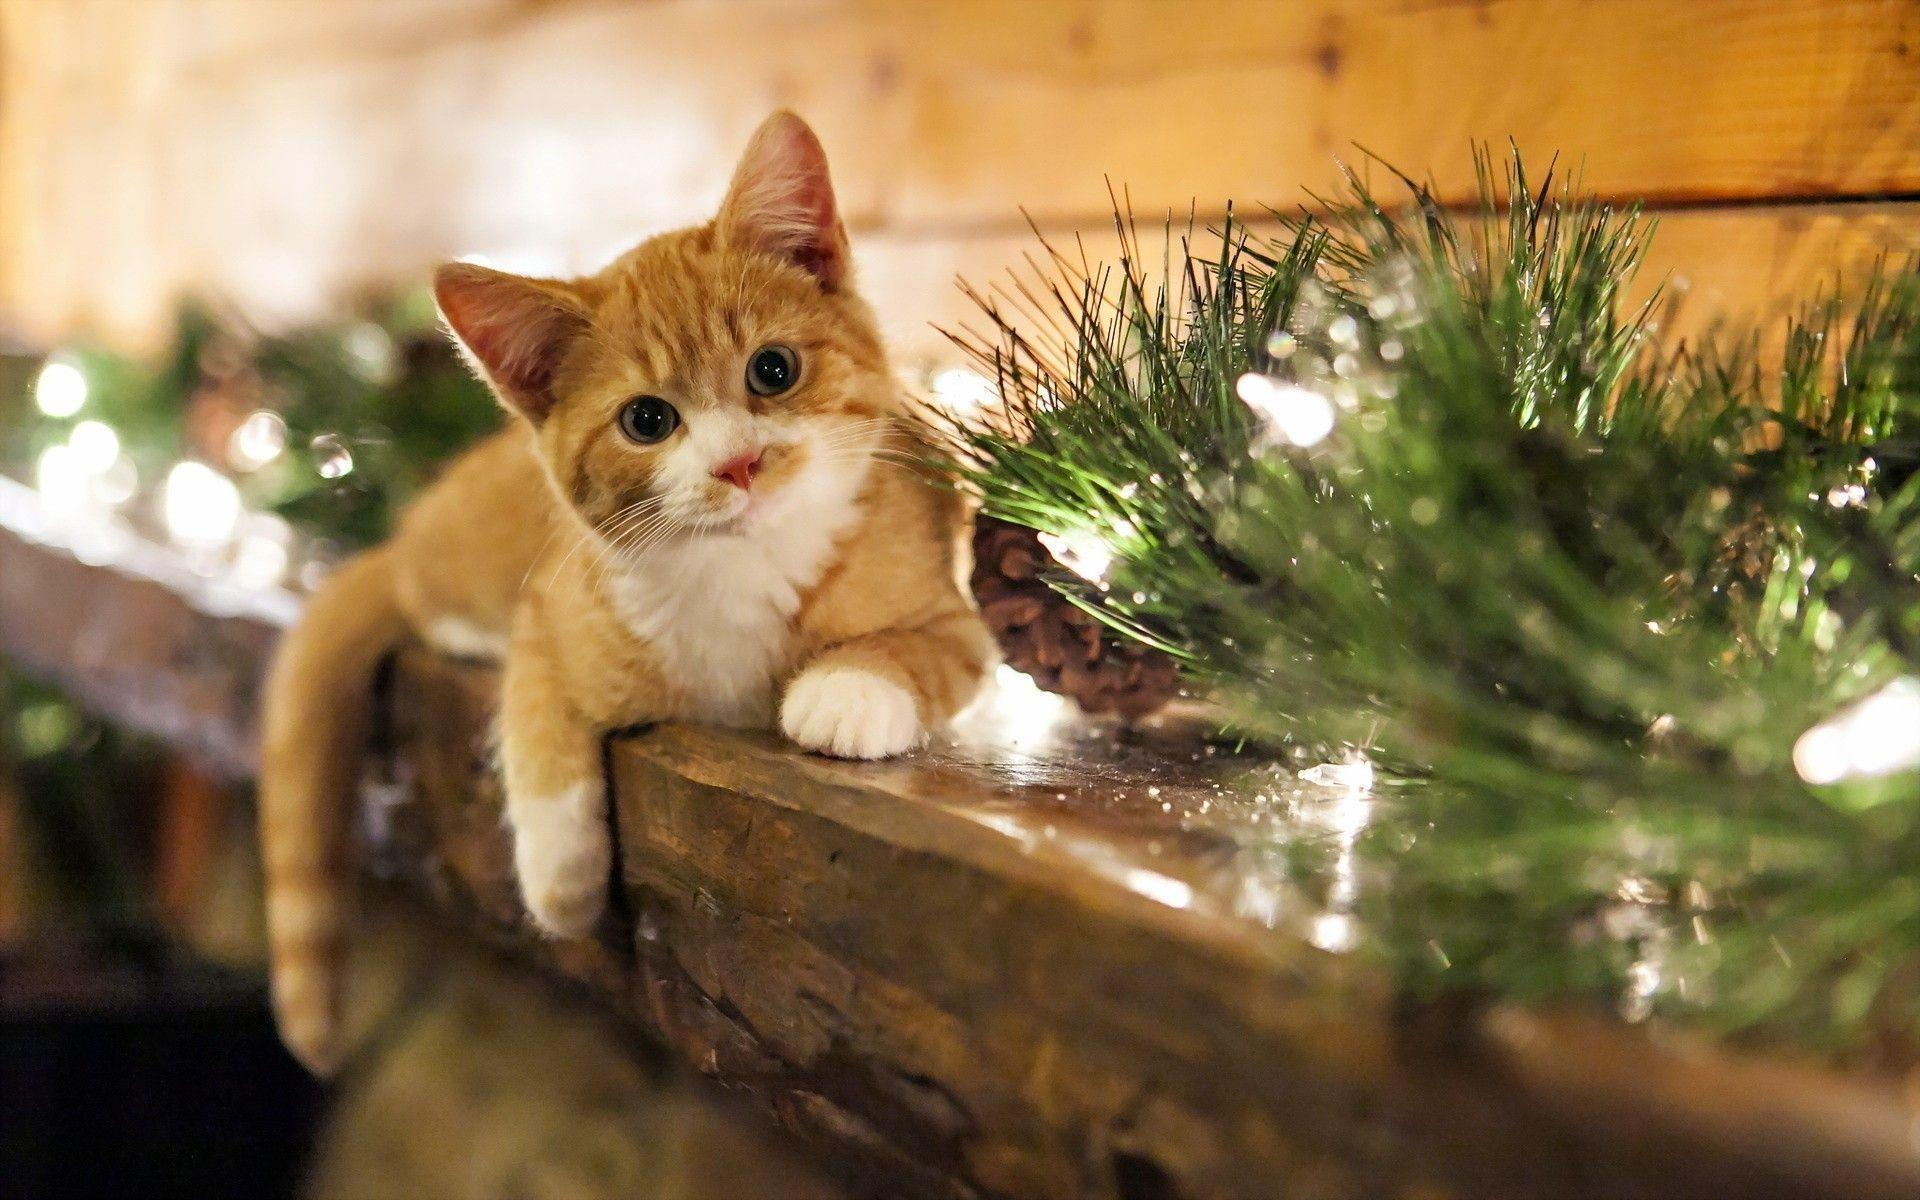 christmas kitten wallpaper 2015 - Grasscloth Wallpaper